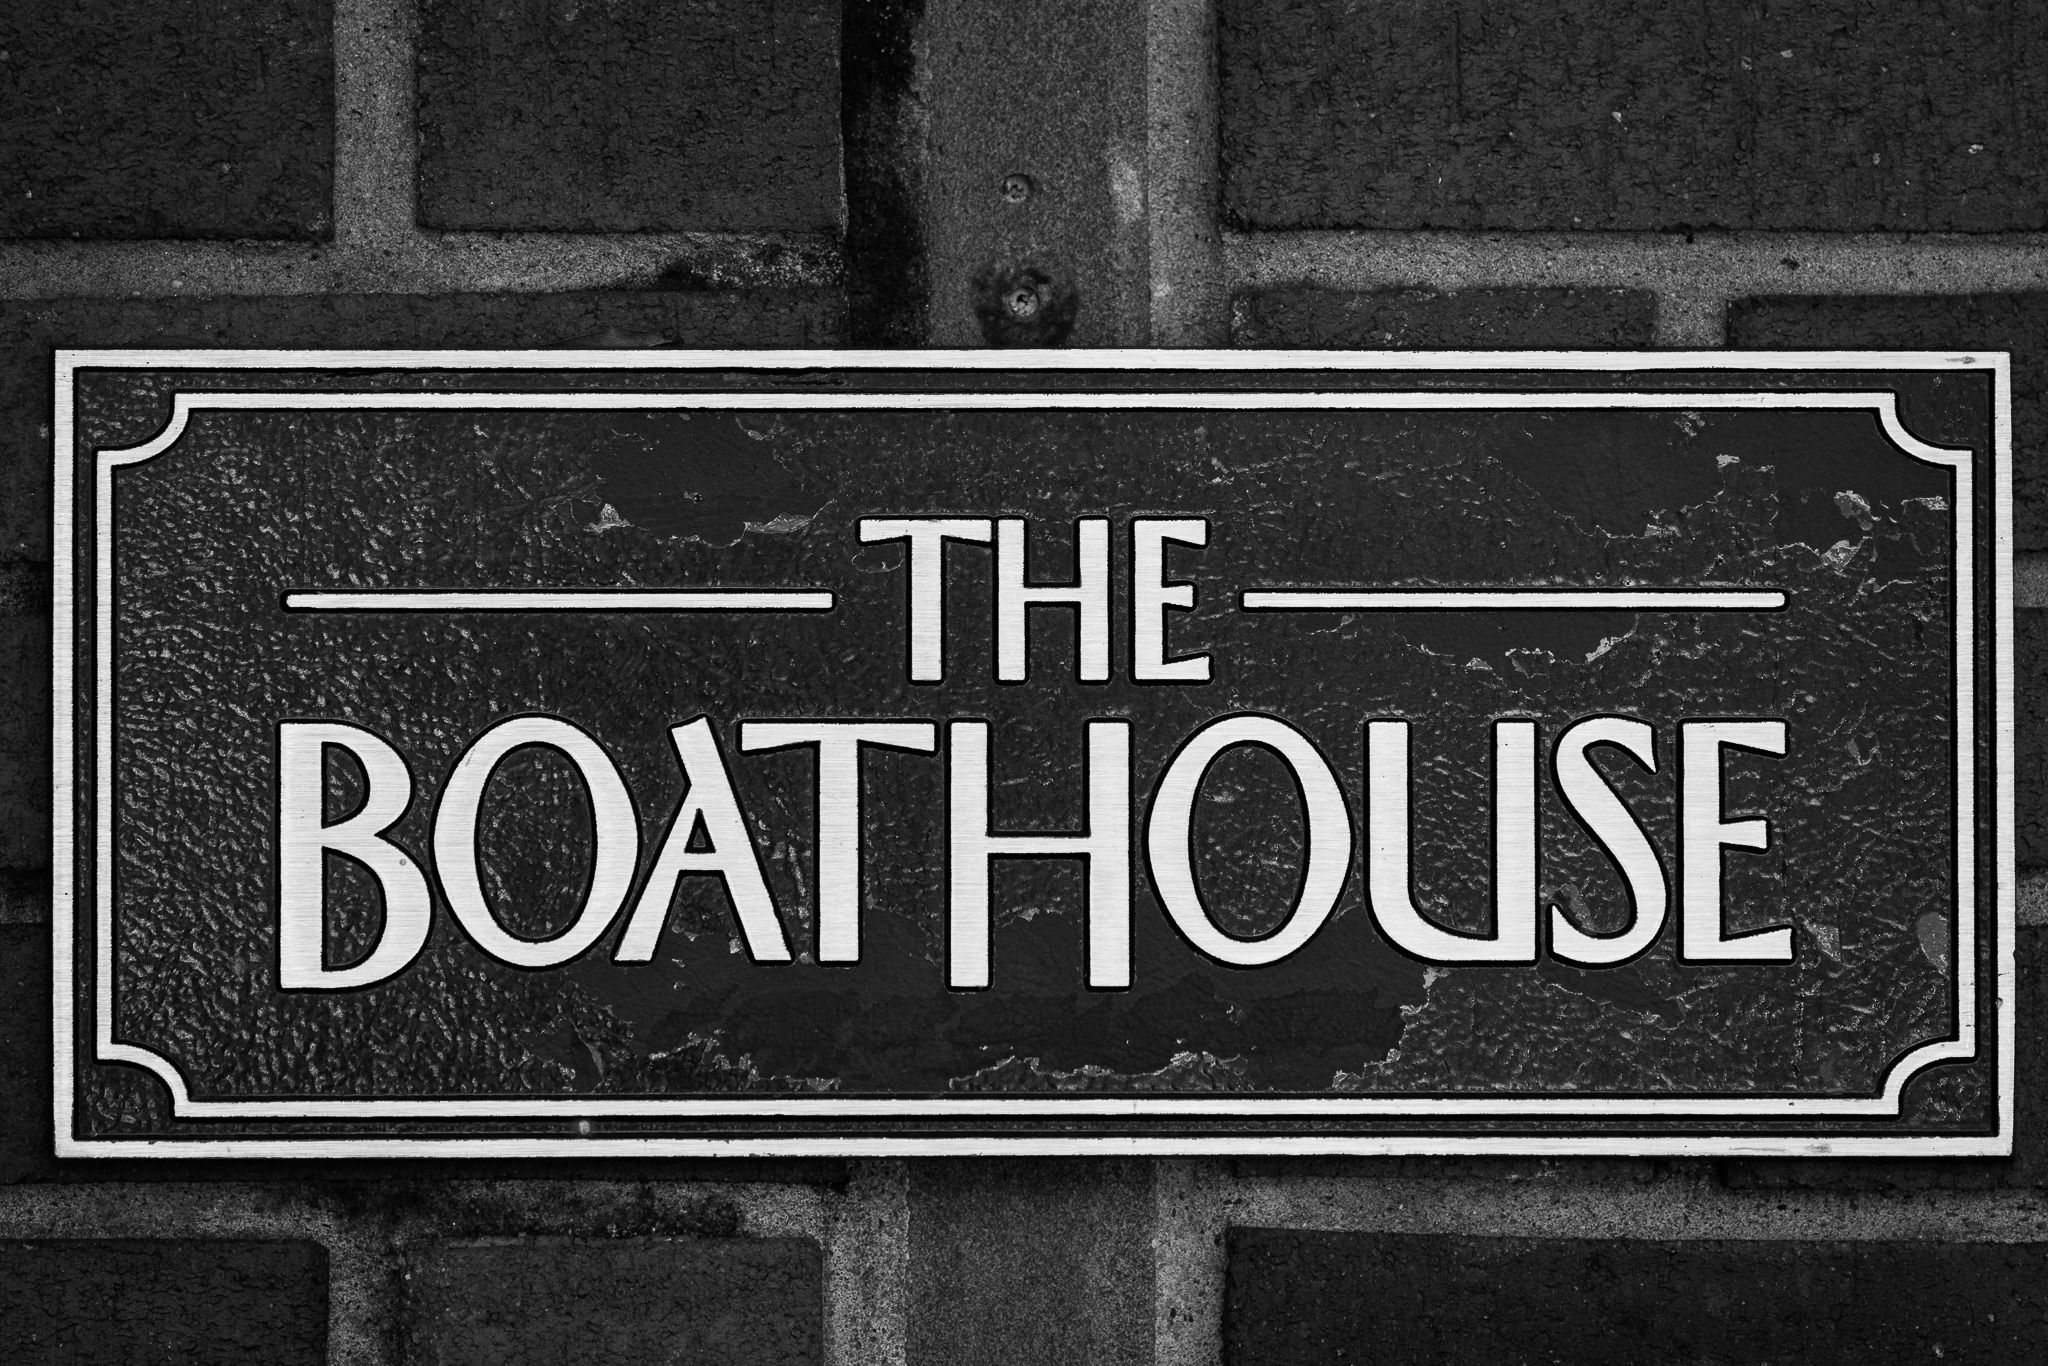 a black and white photograph of the sign at the boathouse restaurant in central park